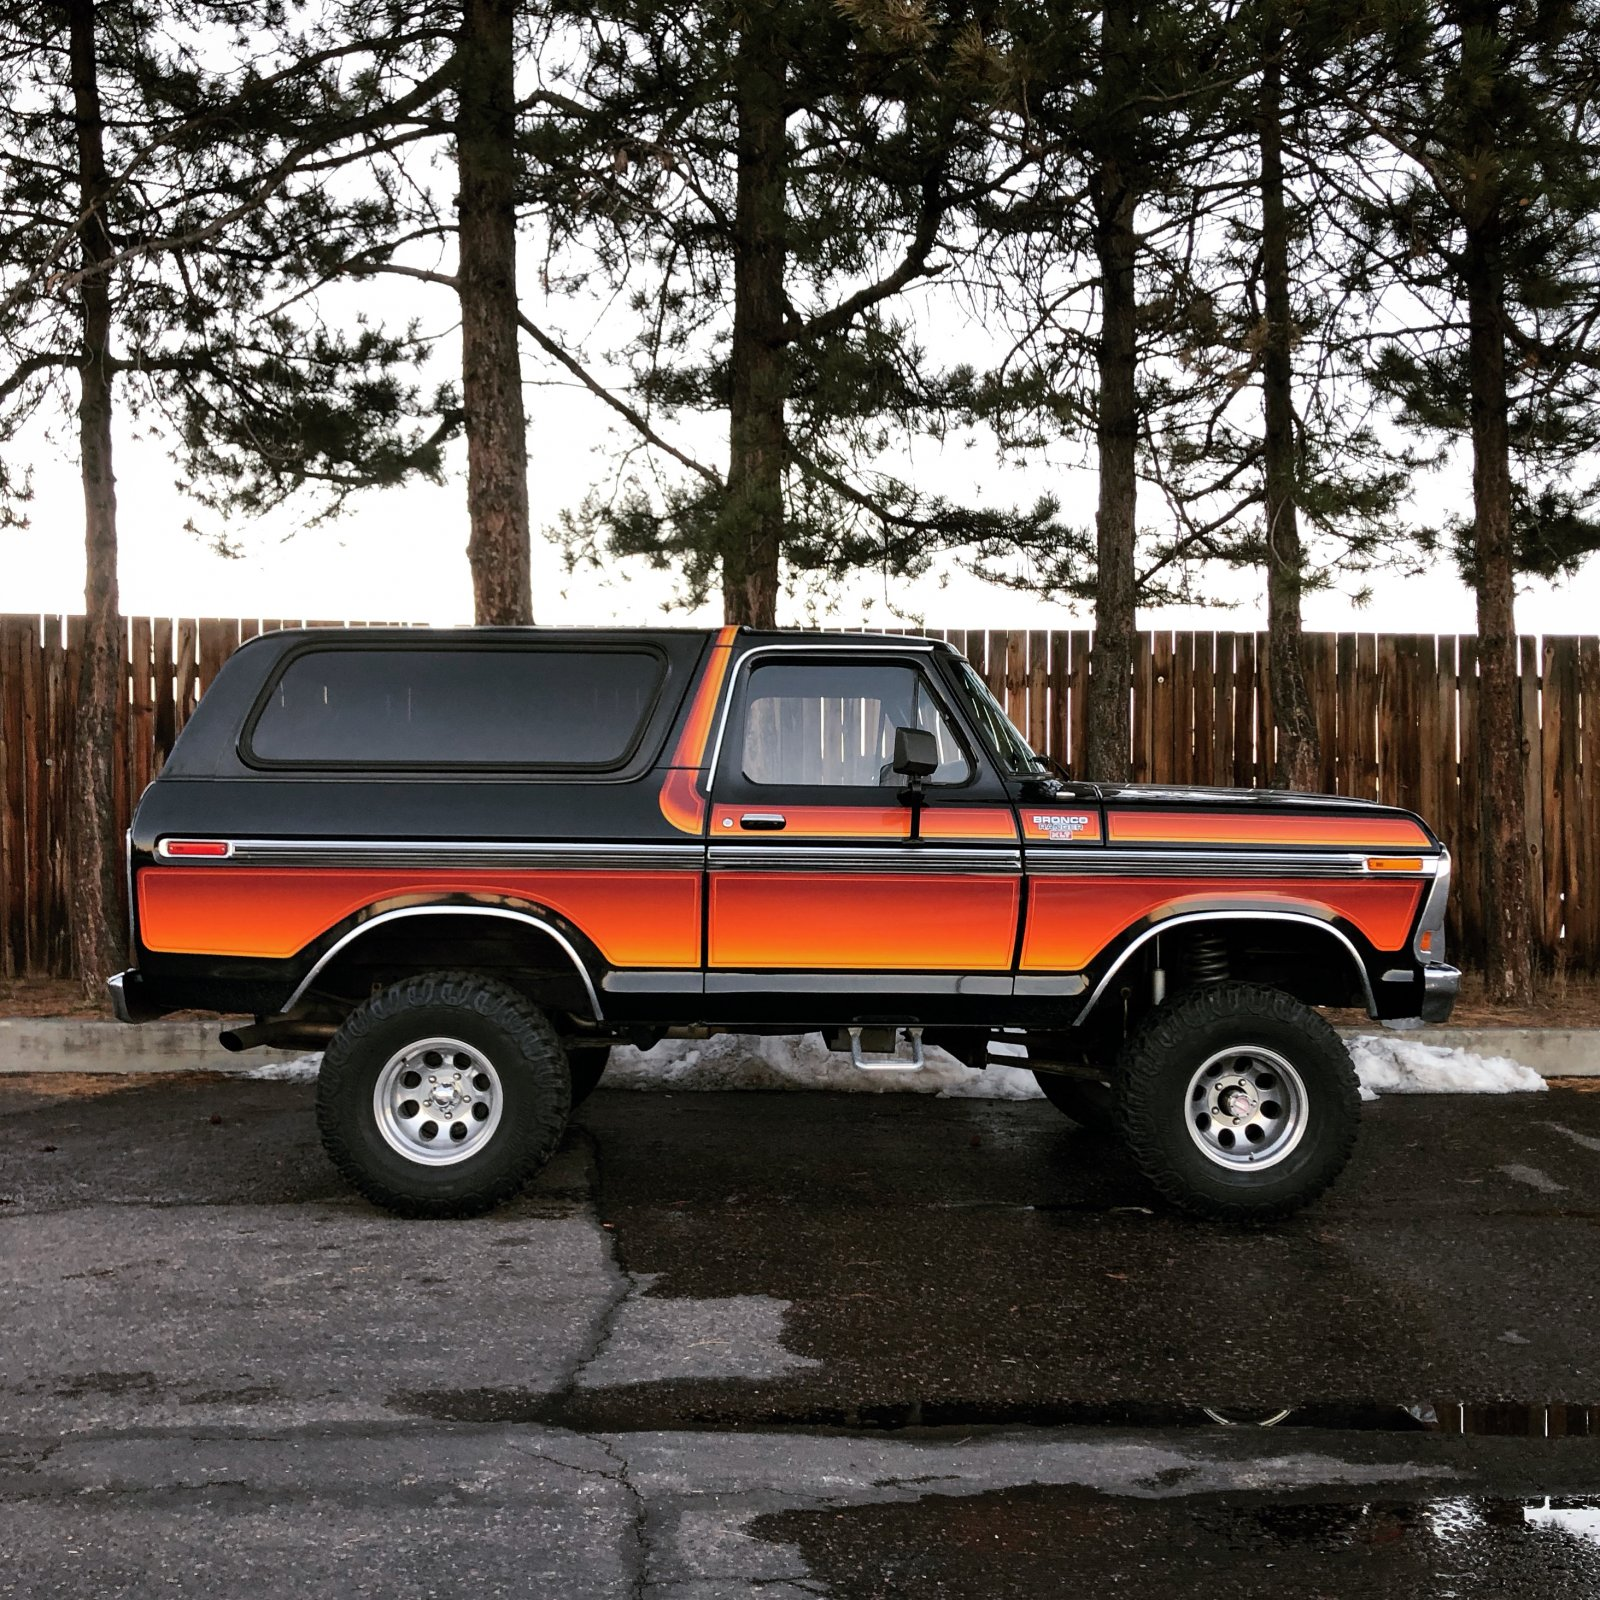 1979 Ford Bronco Ranger XLT - For Sale 2.JPG